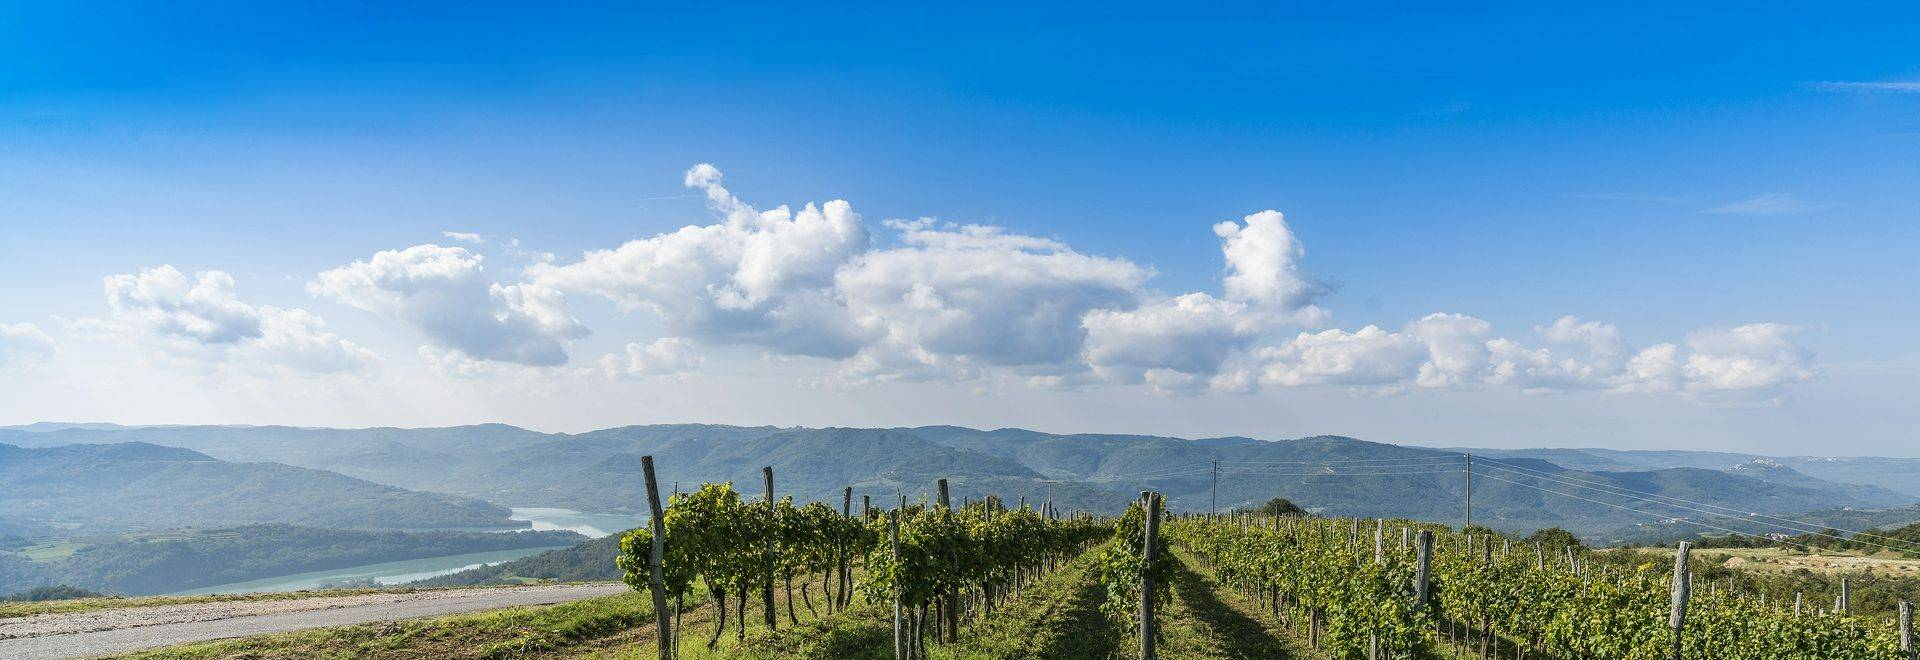 Vineyard Istria 01